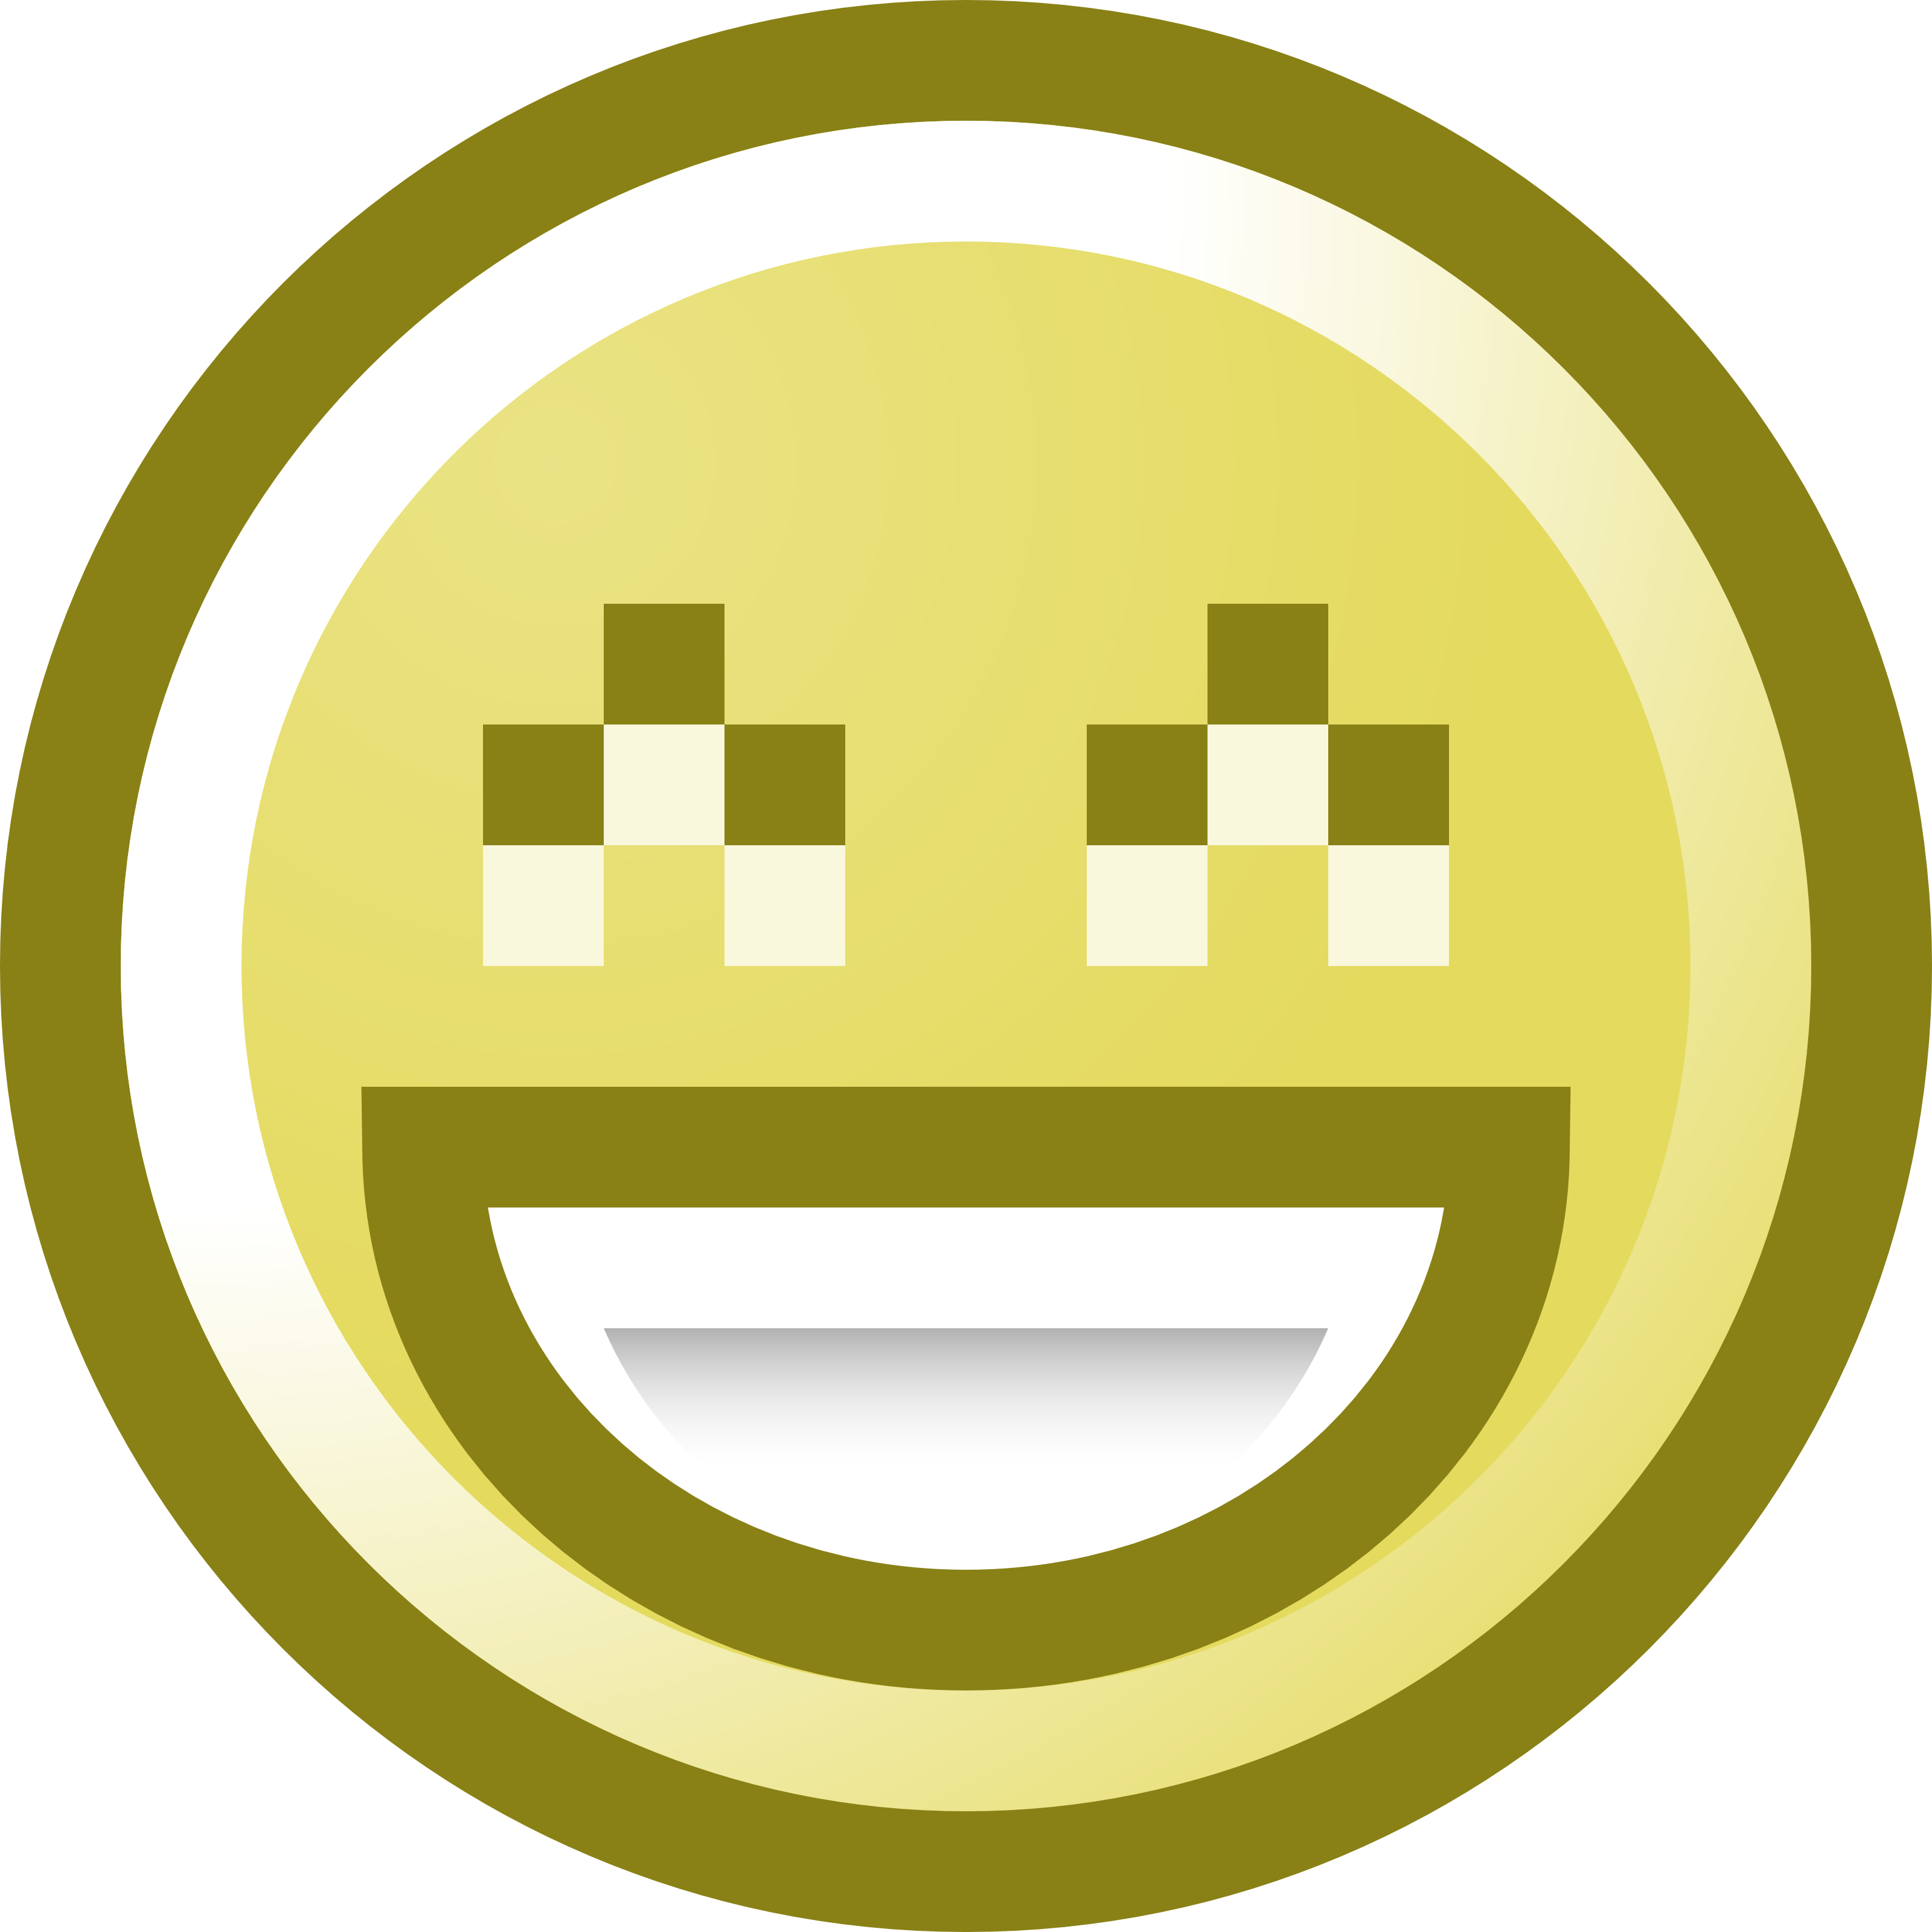 Smell clipart bad face. Sick free download best